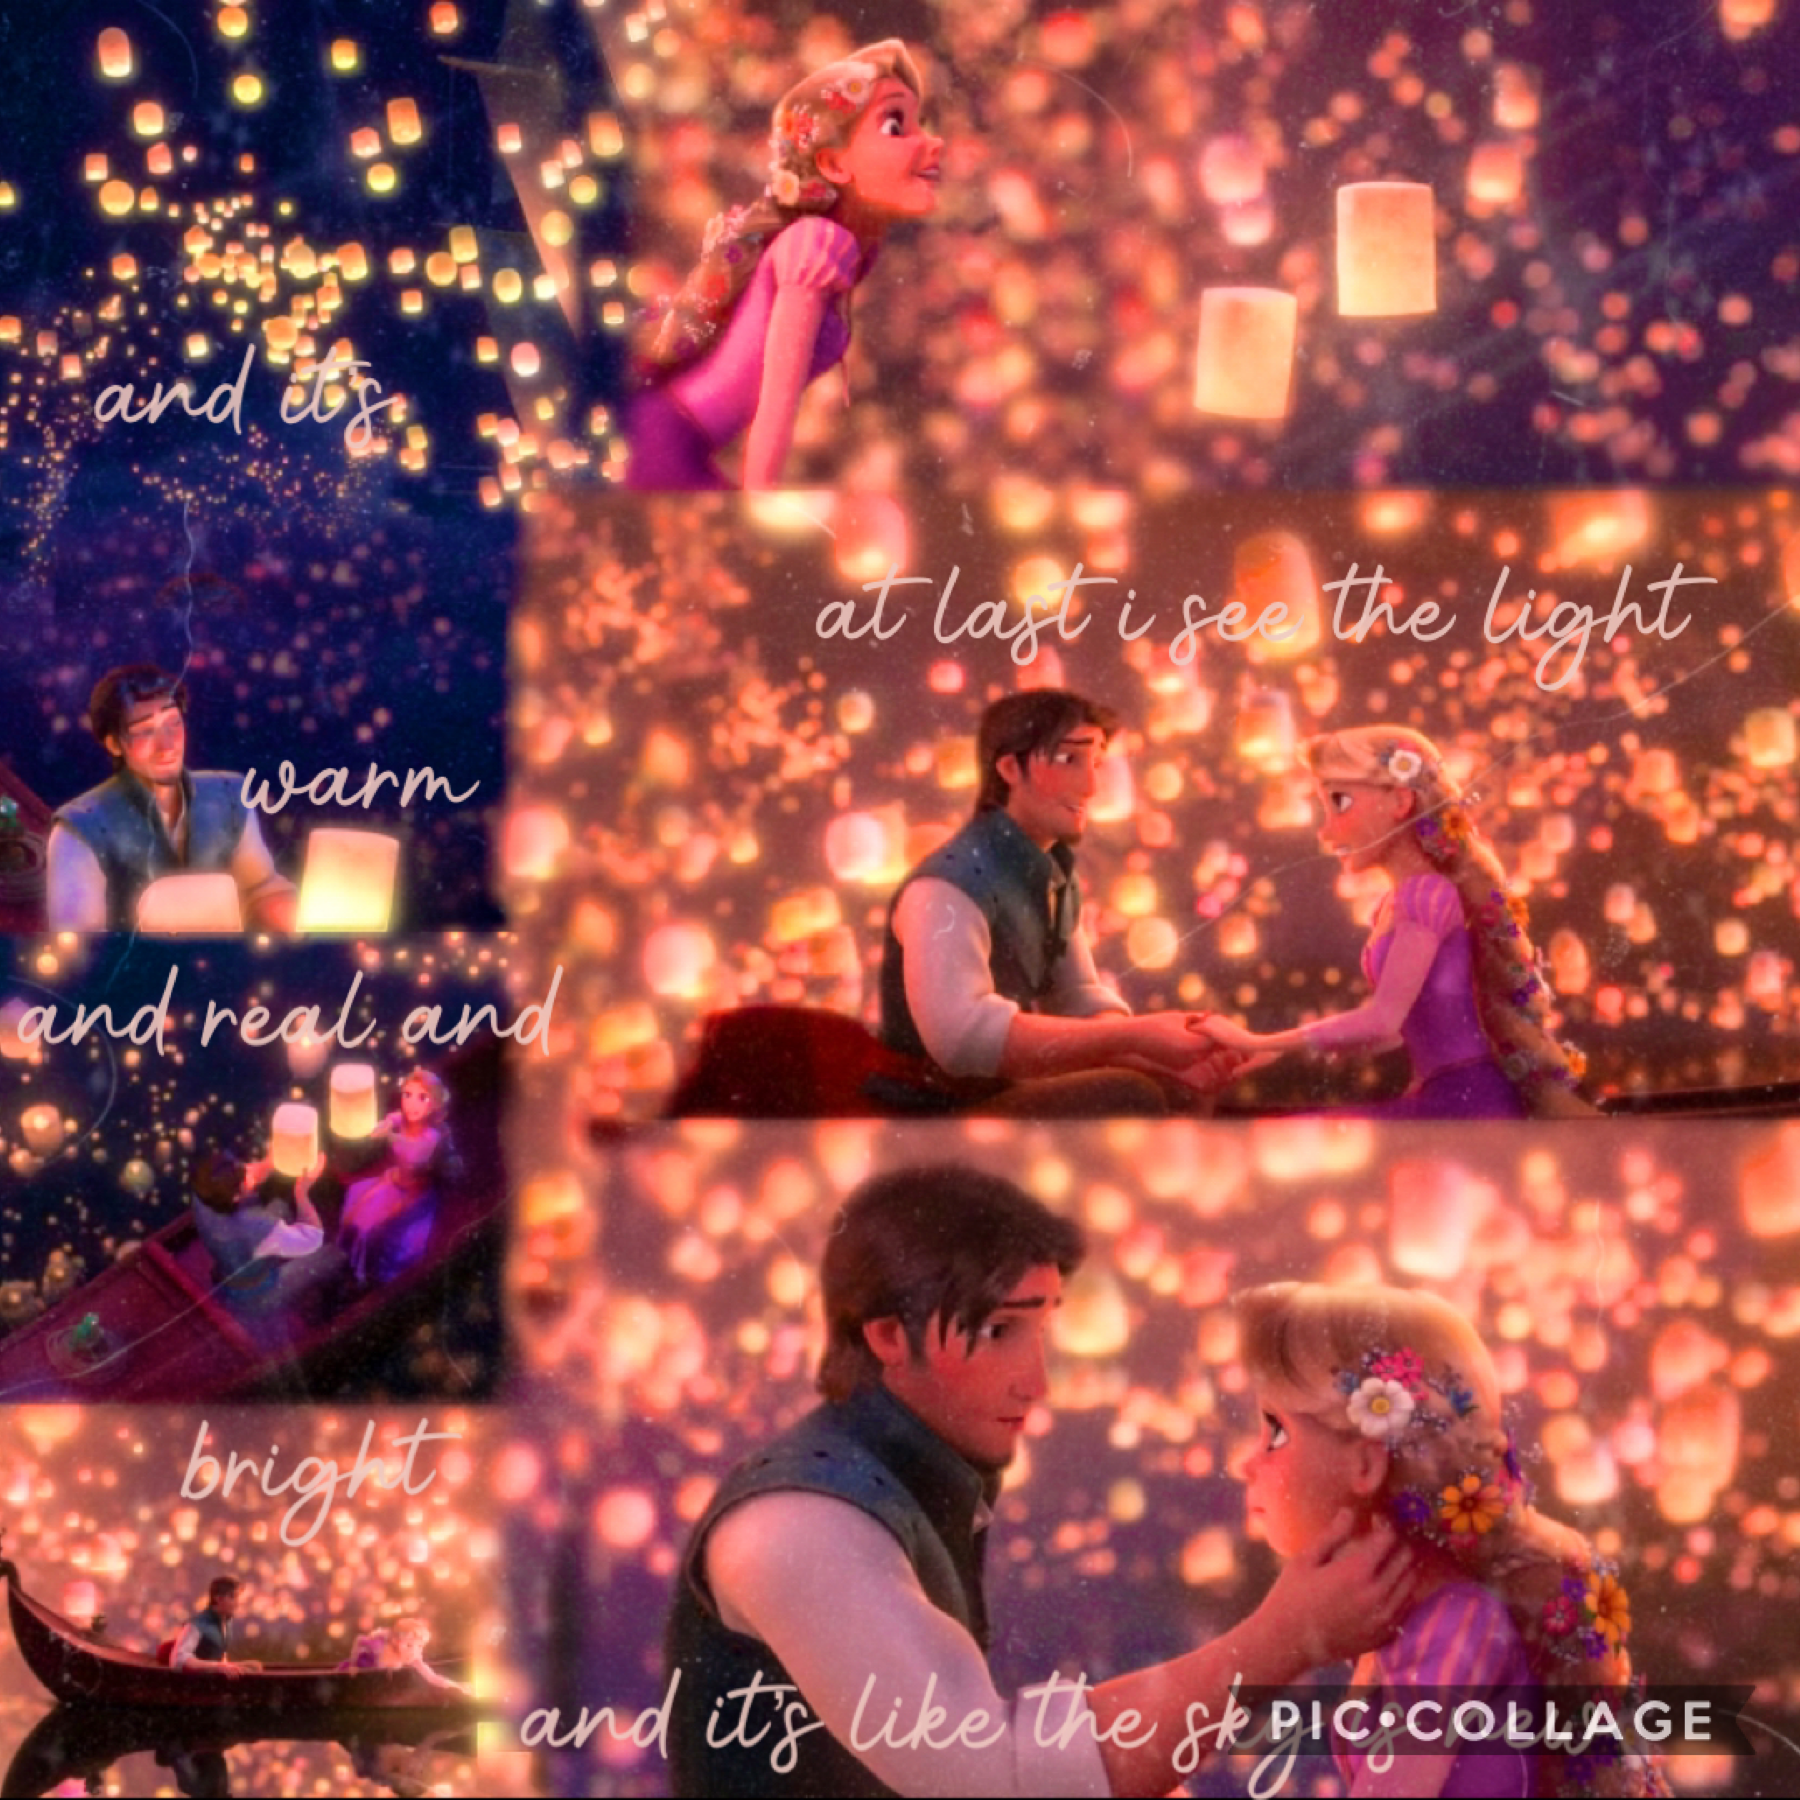 here's a little scene/blend edit  I'm not very good at these but I thought it was pretty